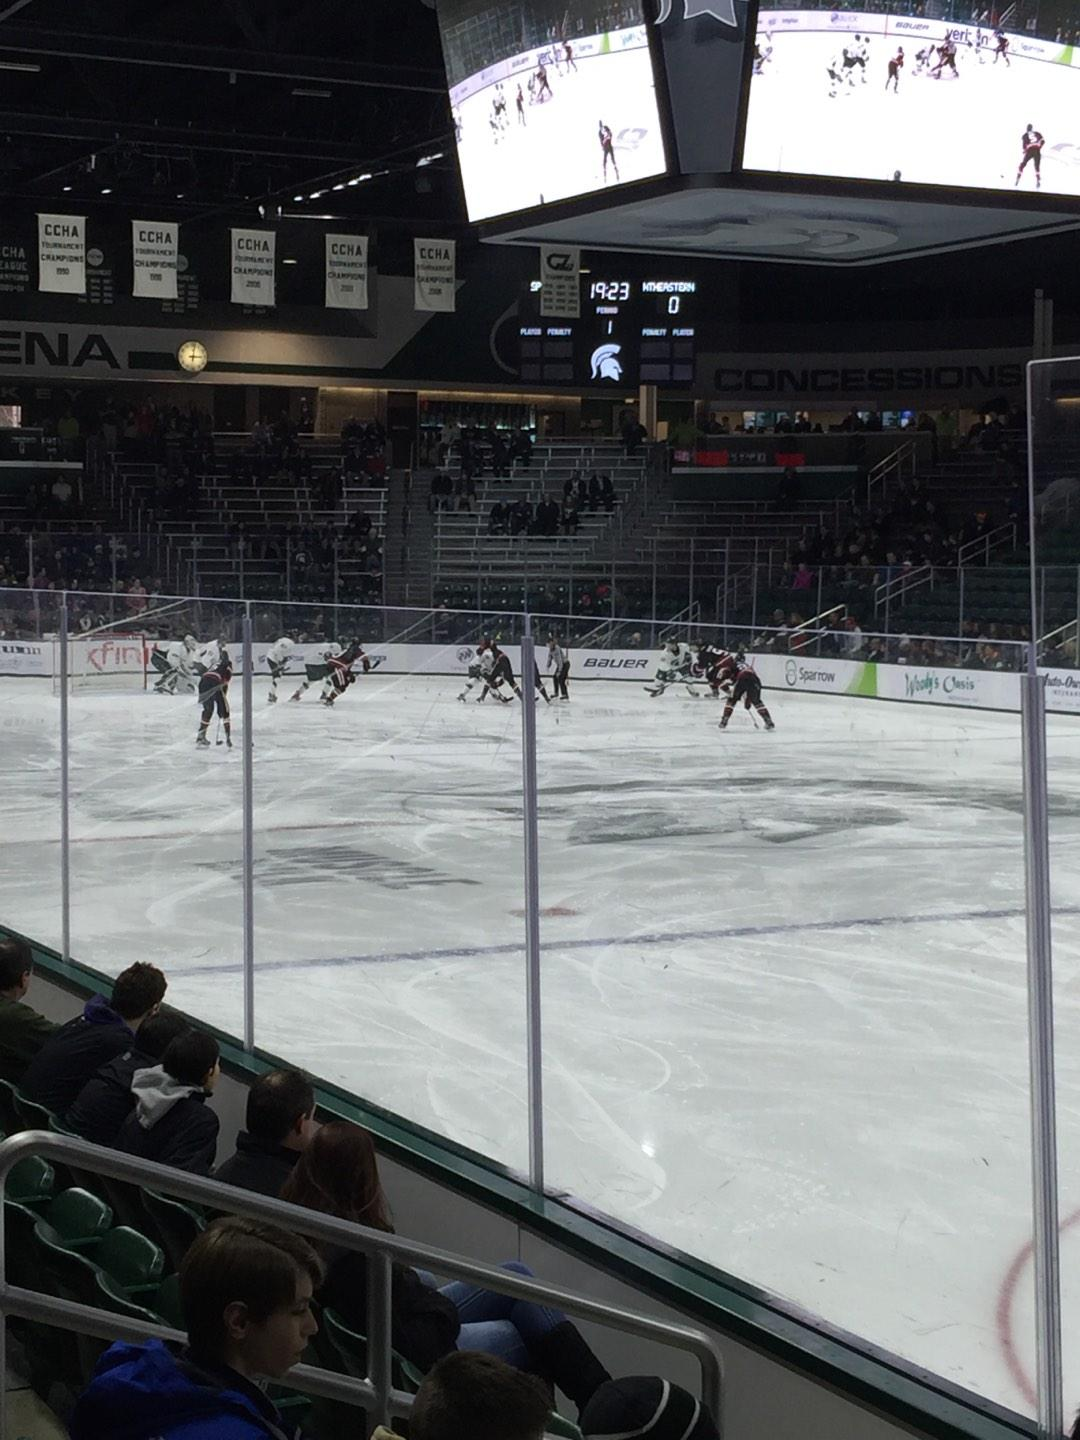 Munn Ice Arena Section F Row 6 Seat 1